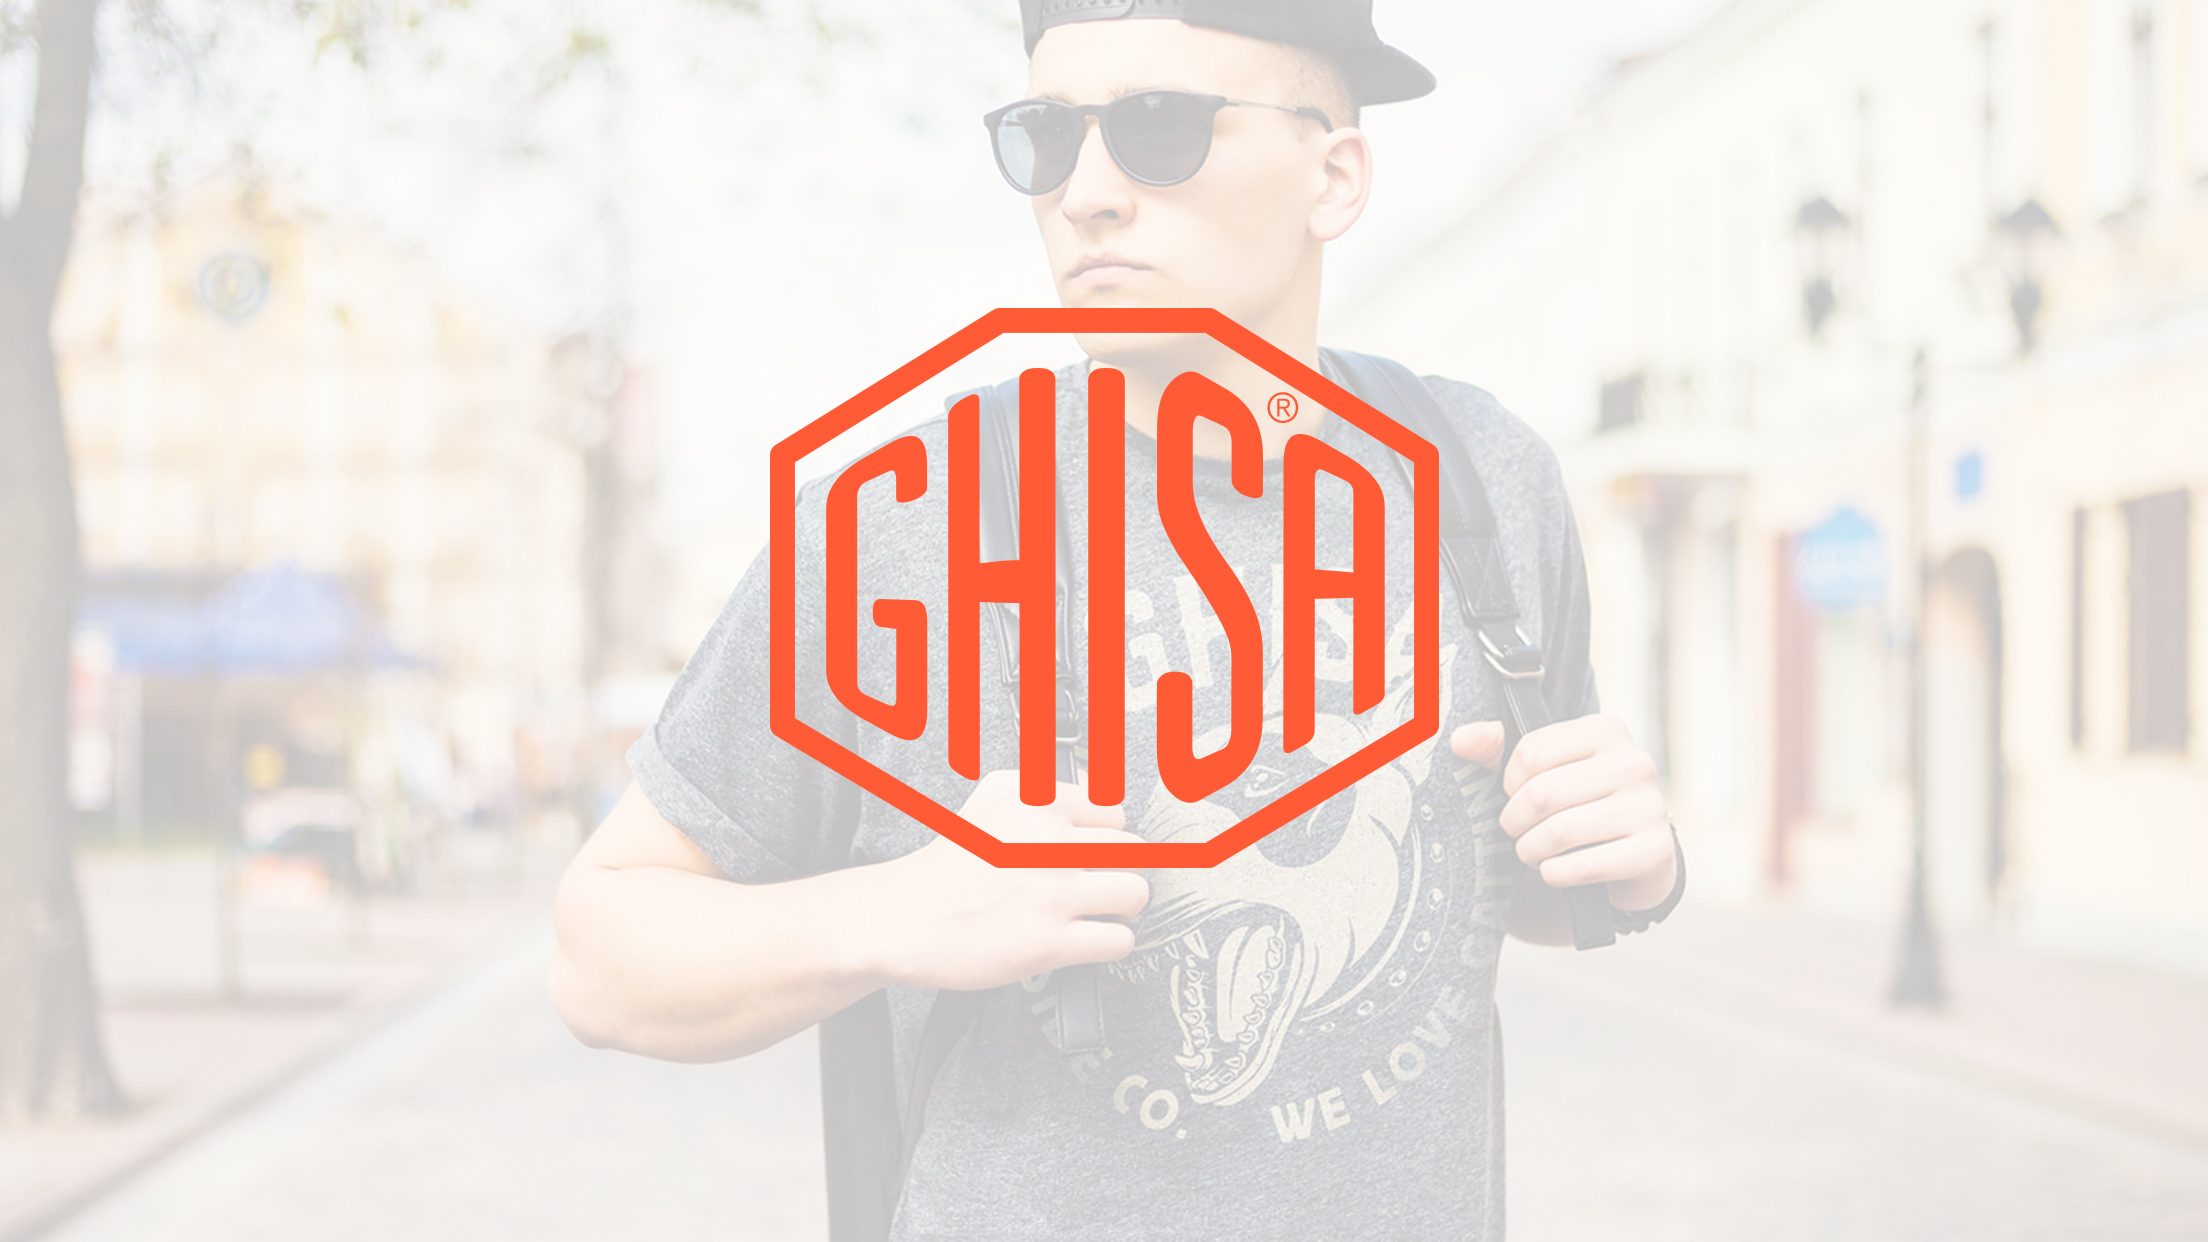 GHISA - marchio colore